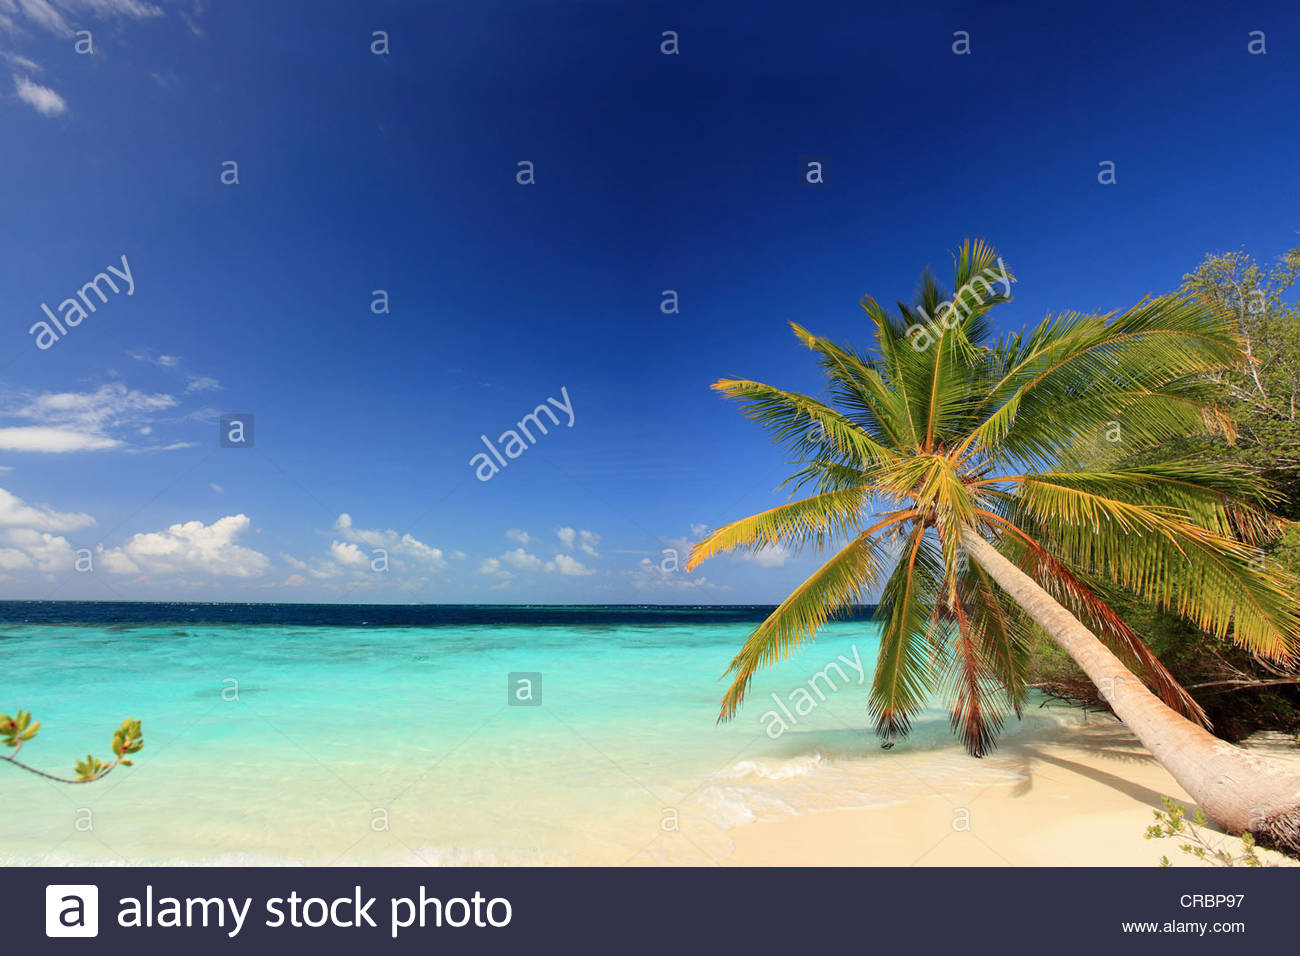 Palm trees growing on tropical beach - Stock Image